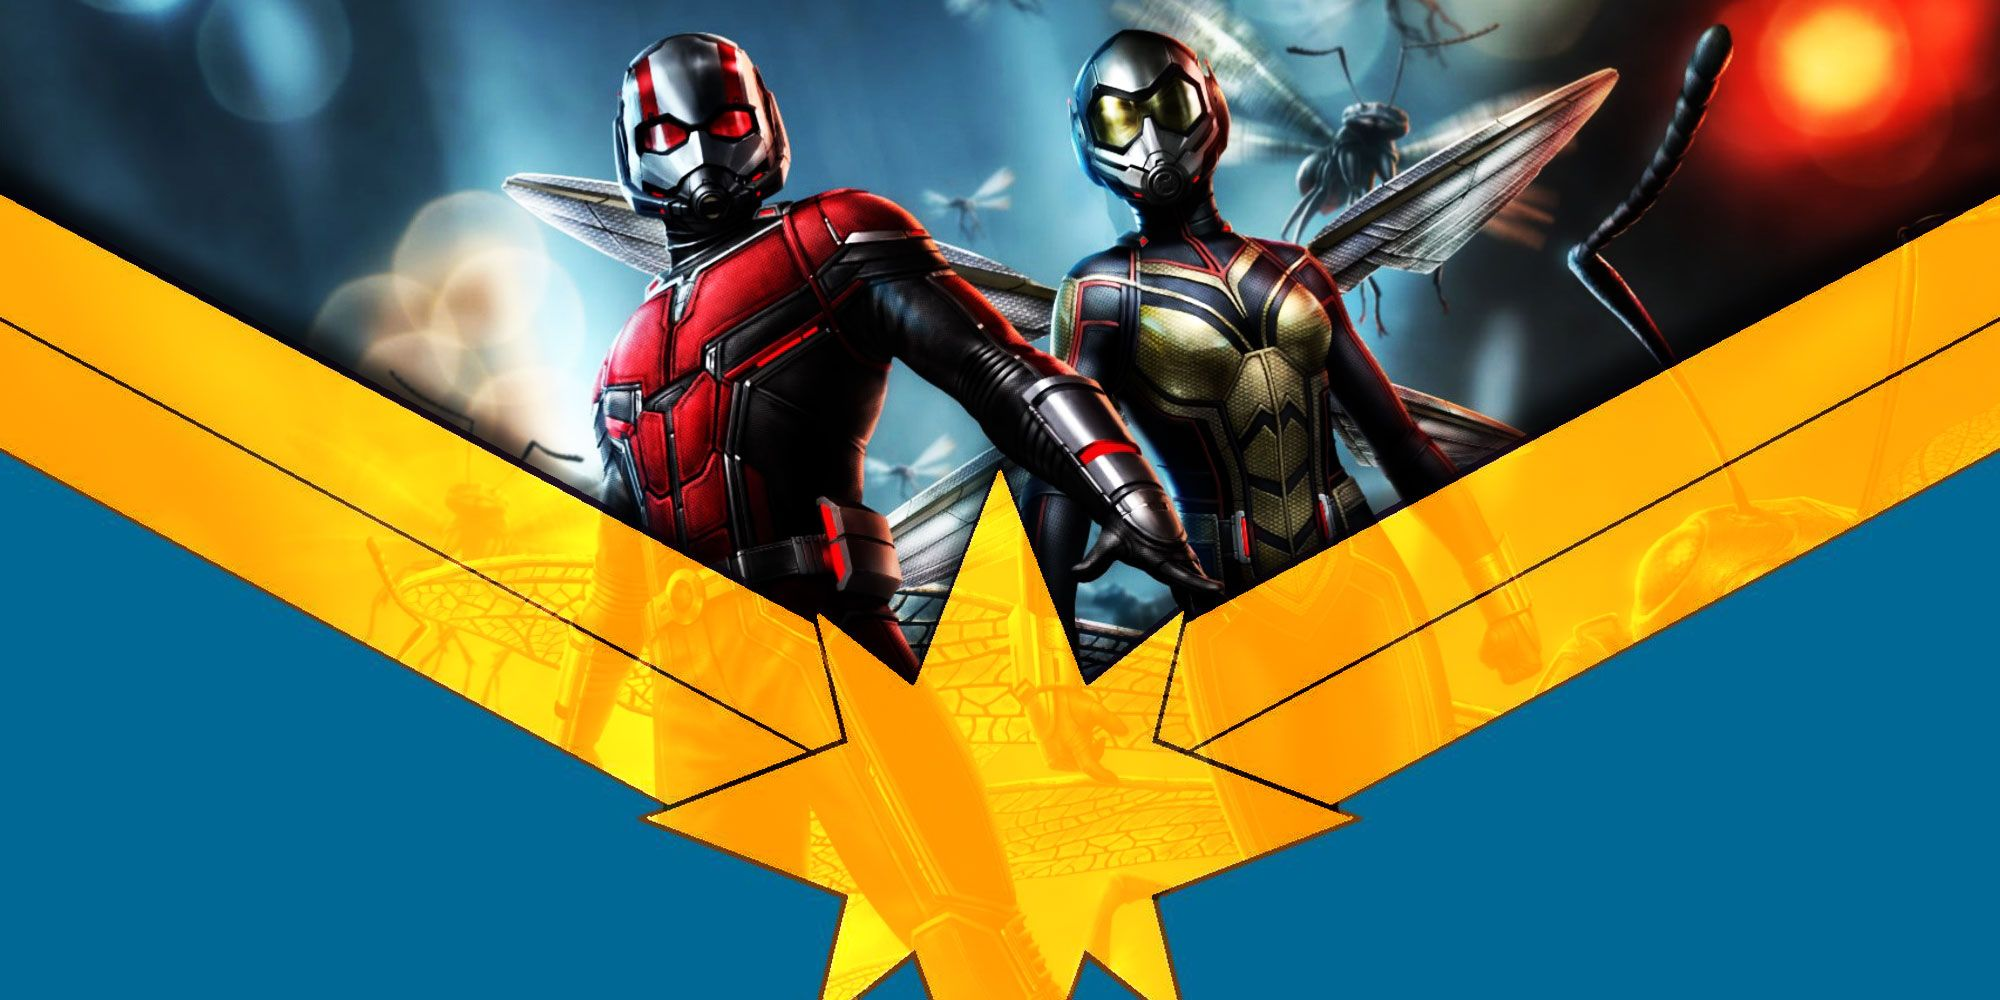 Ant-Man And The Wasp Kinostart